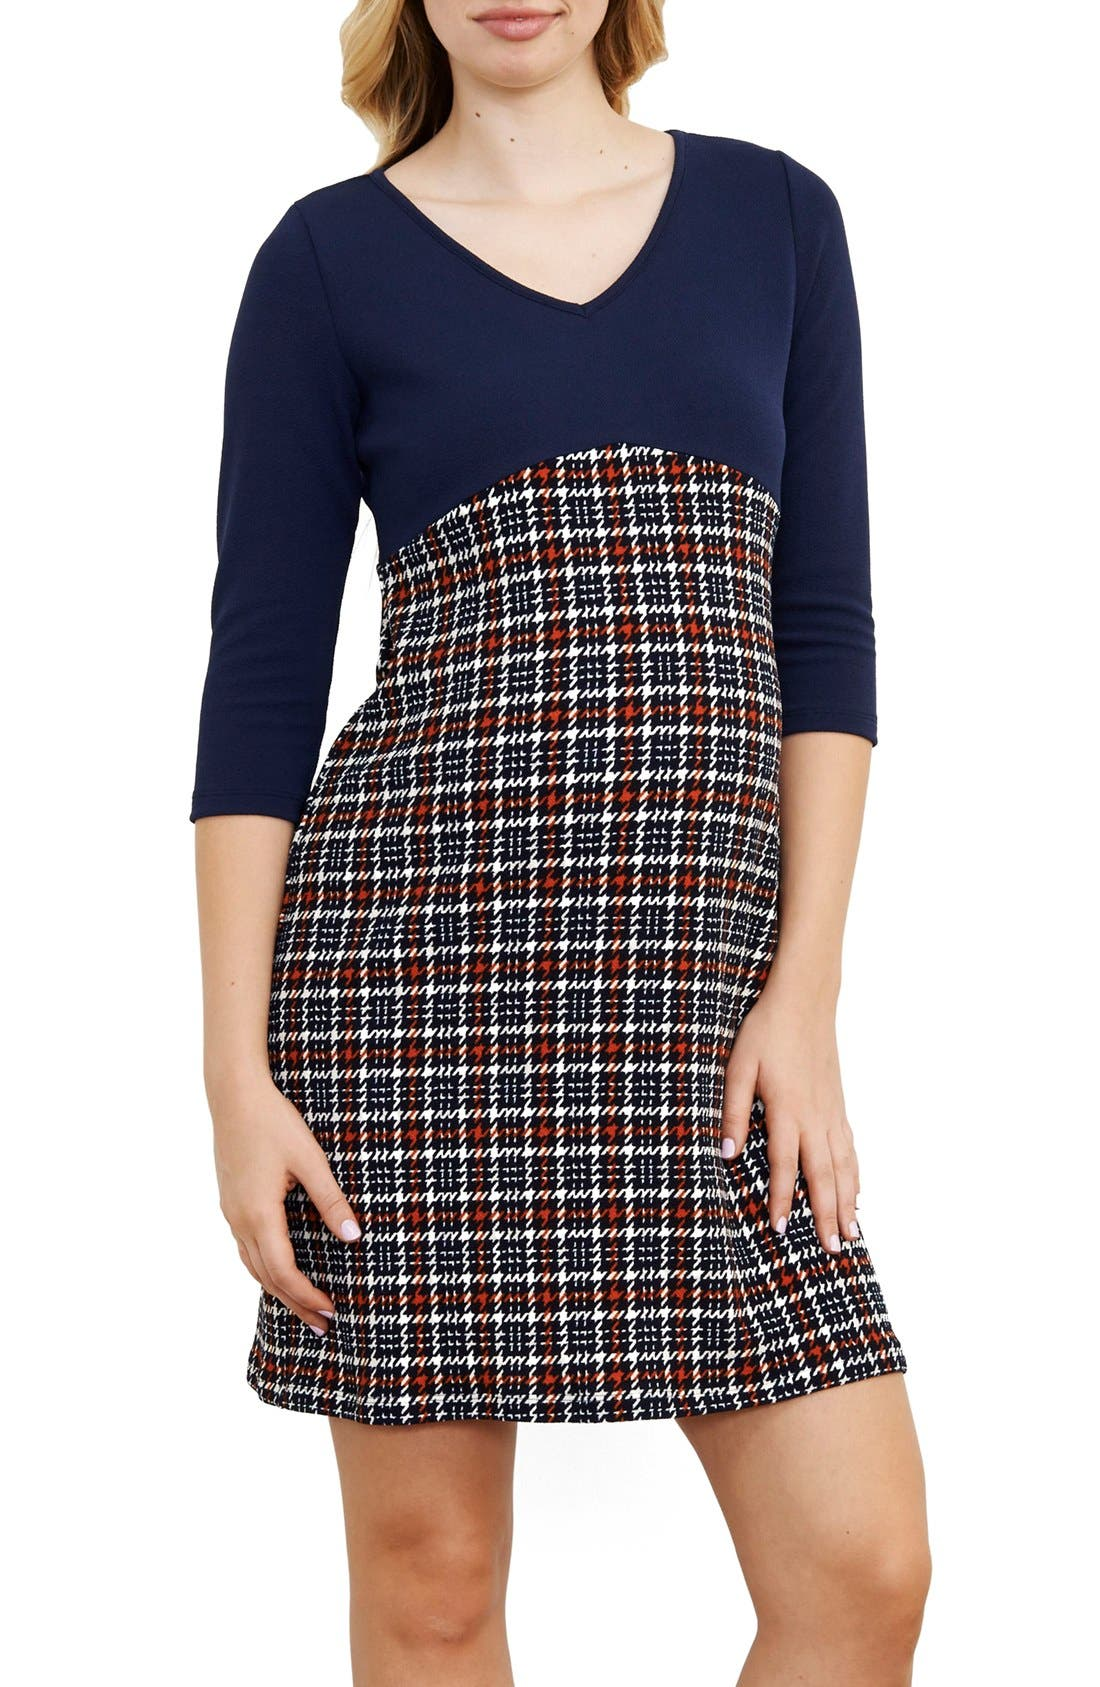 Empire Waist Maternity Dress,                             Main thumbnail 1, color,                             NAVY/ ORANGE CHECKERS